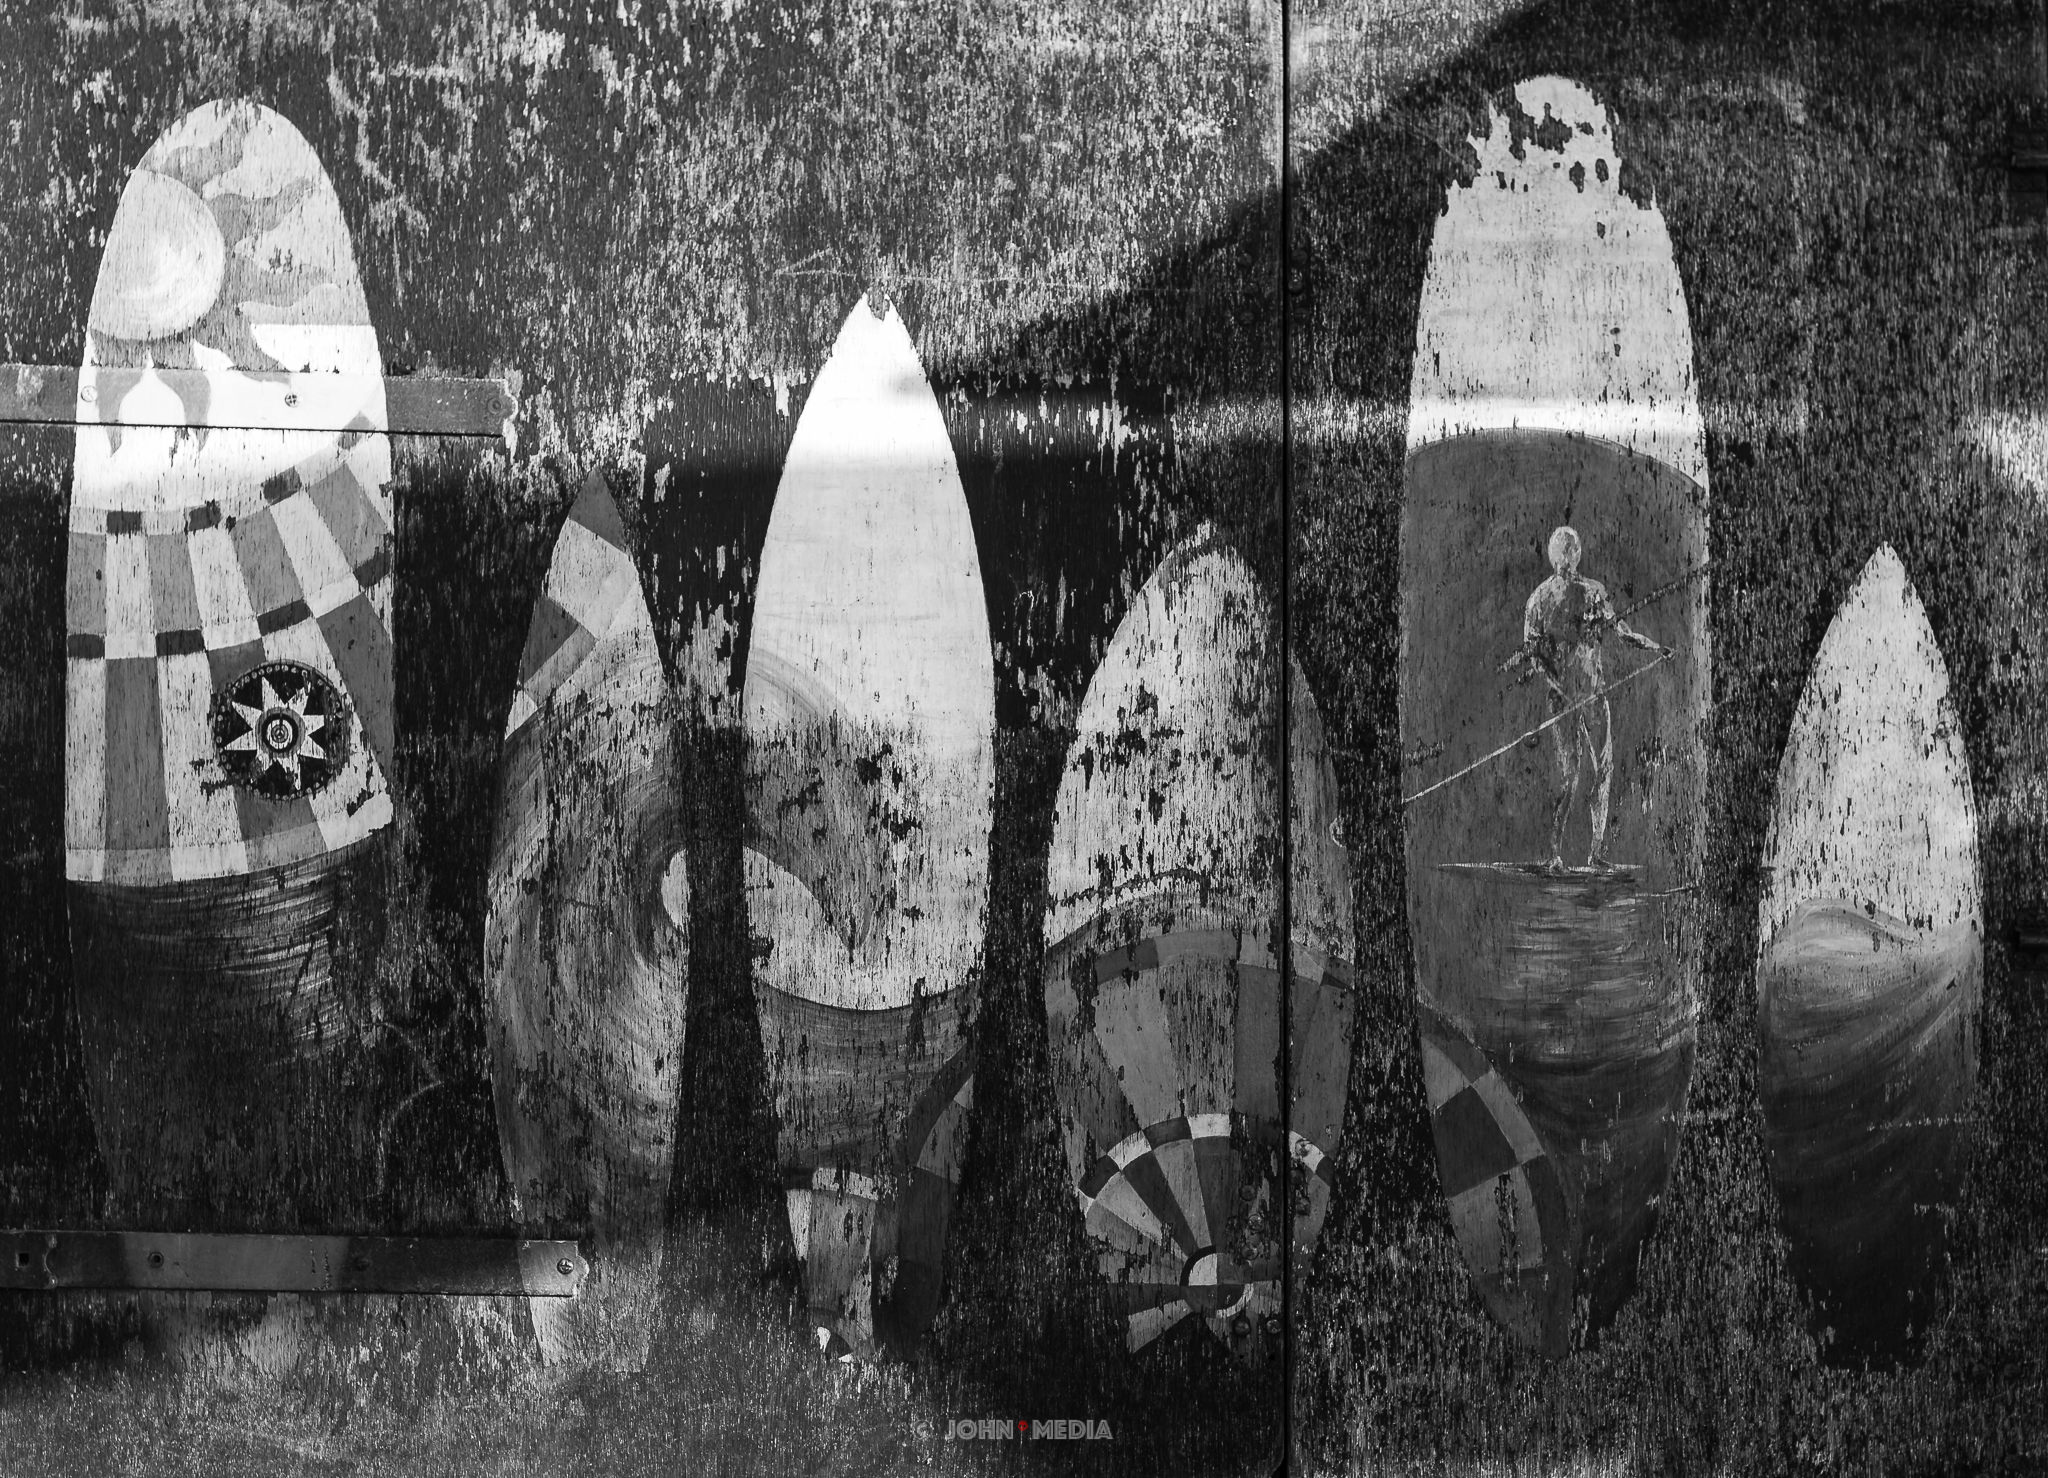 Brighton photography - surfboards